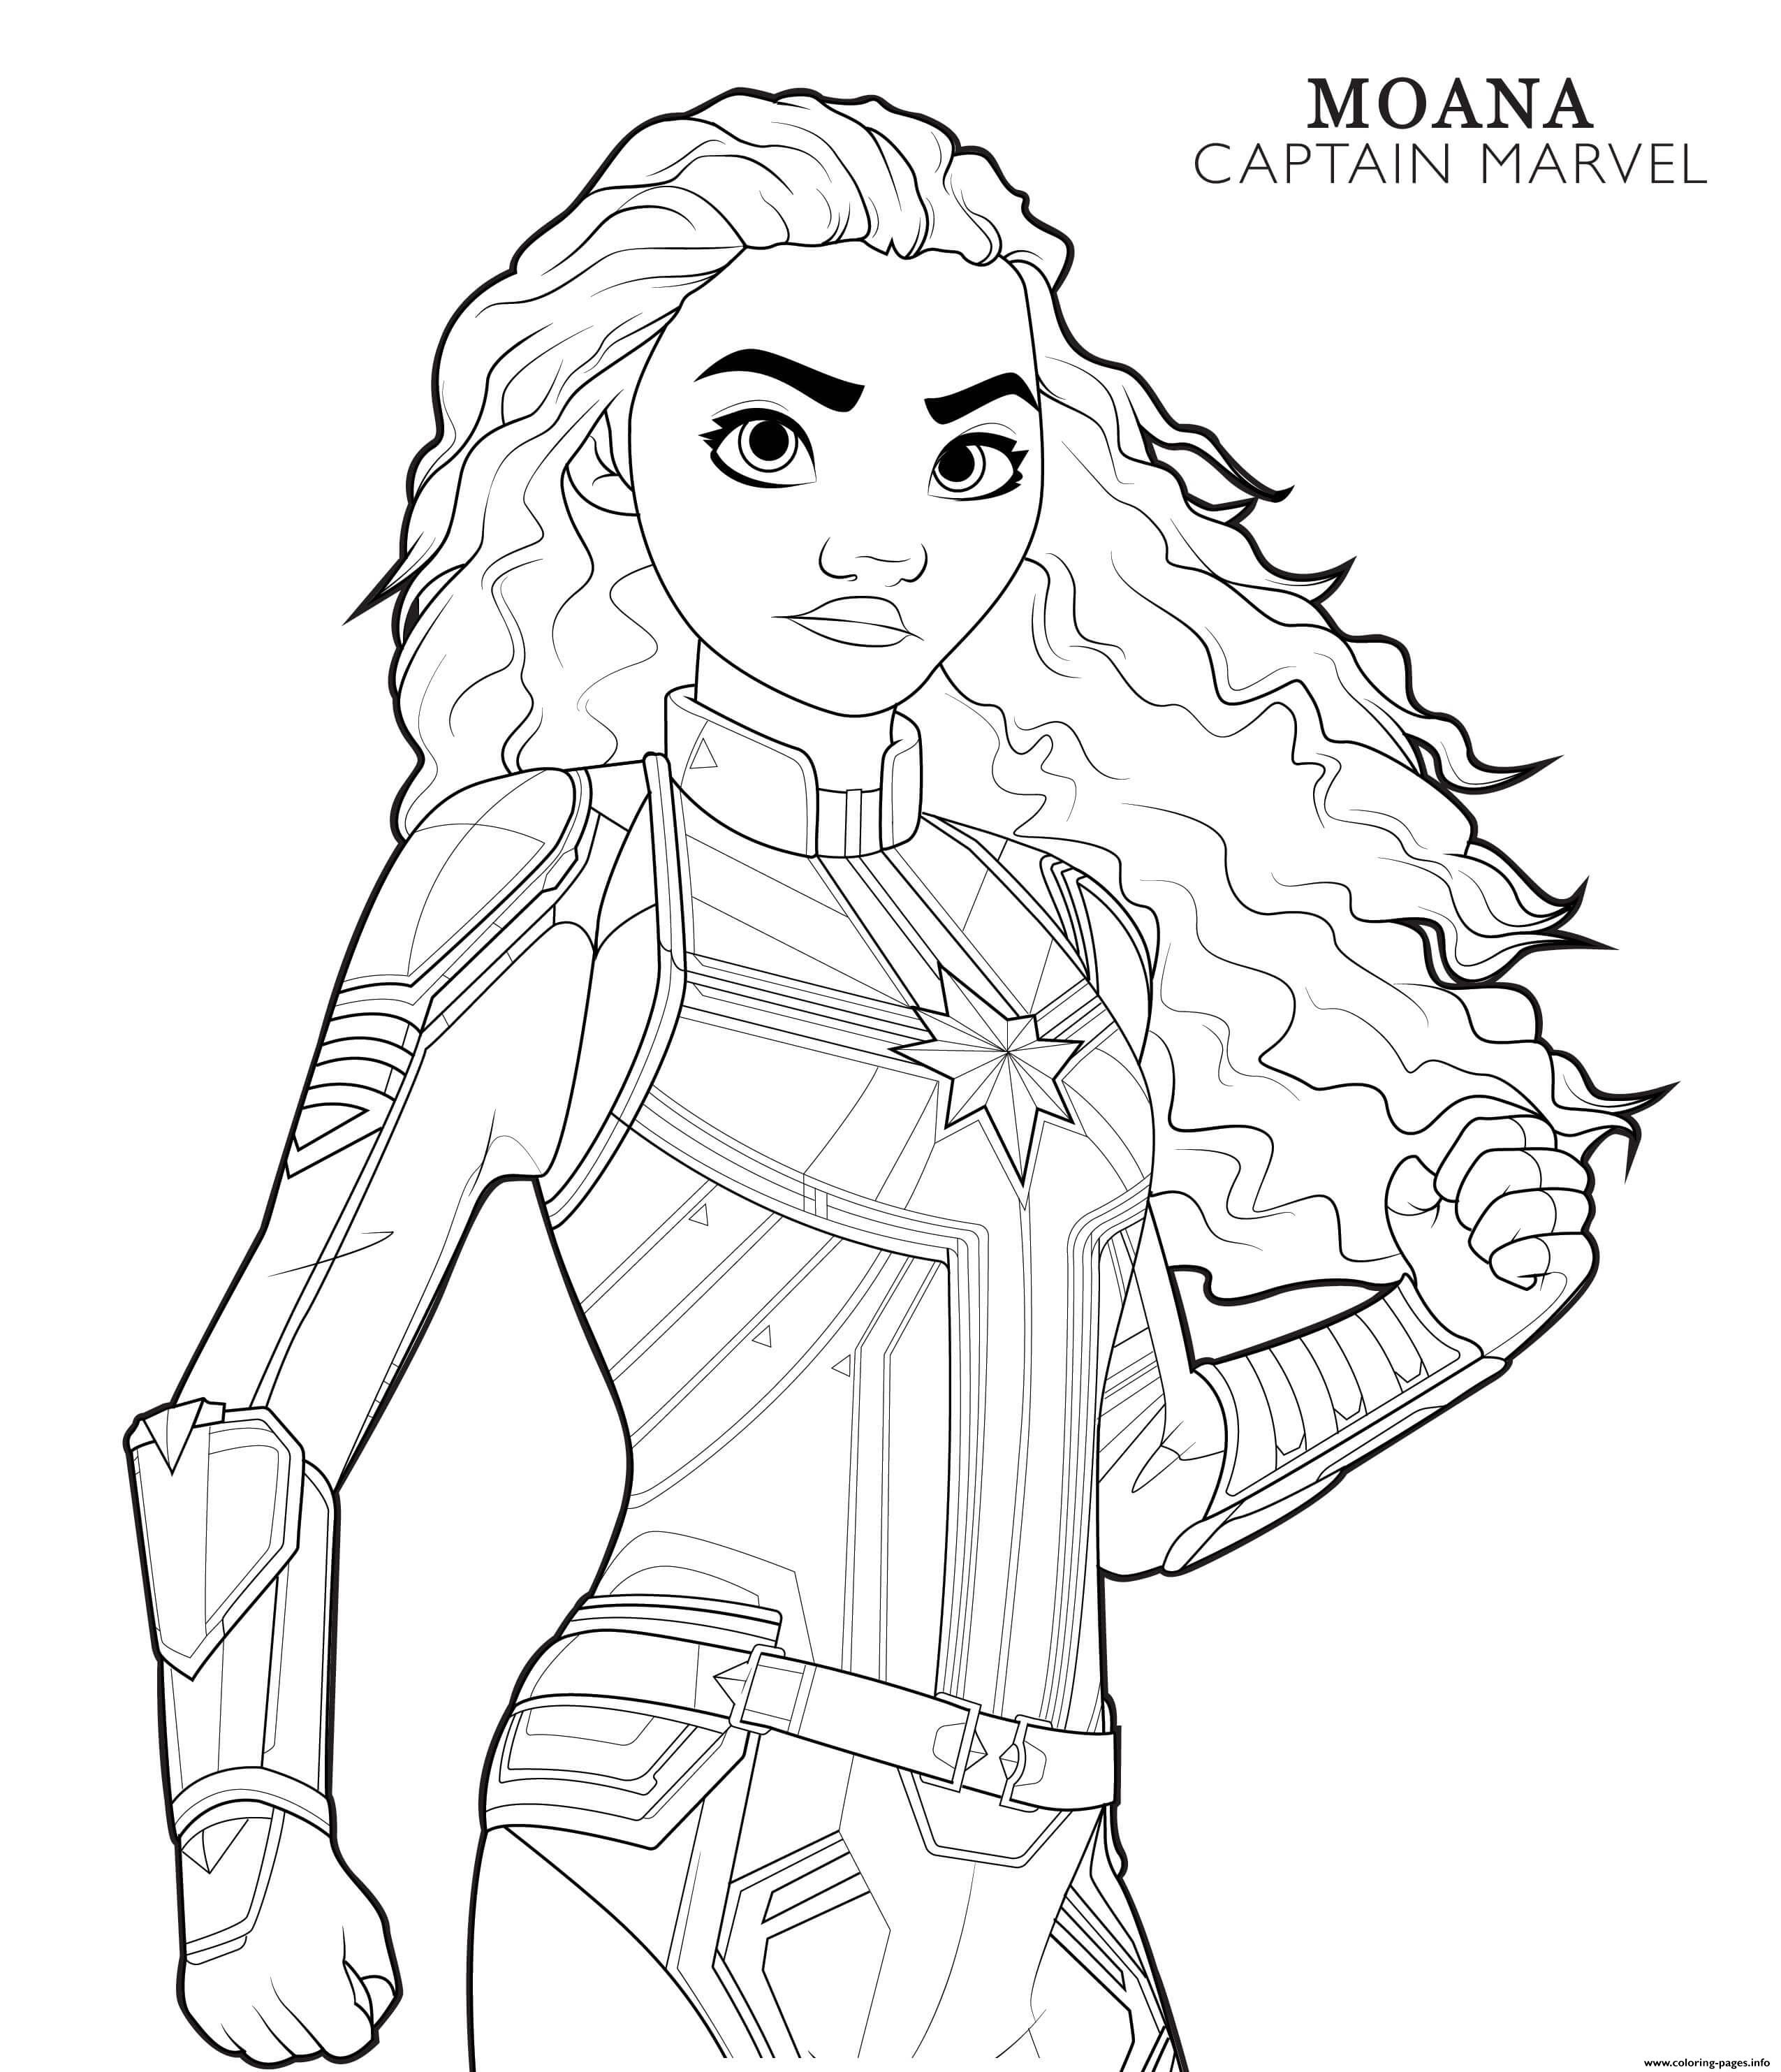 Captain Marvel Moana Disney Avengers coloring pages